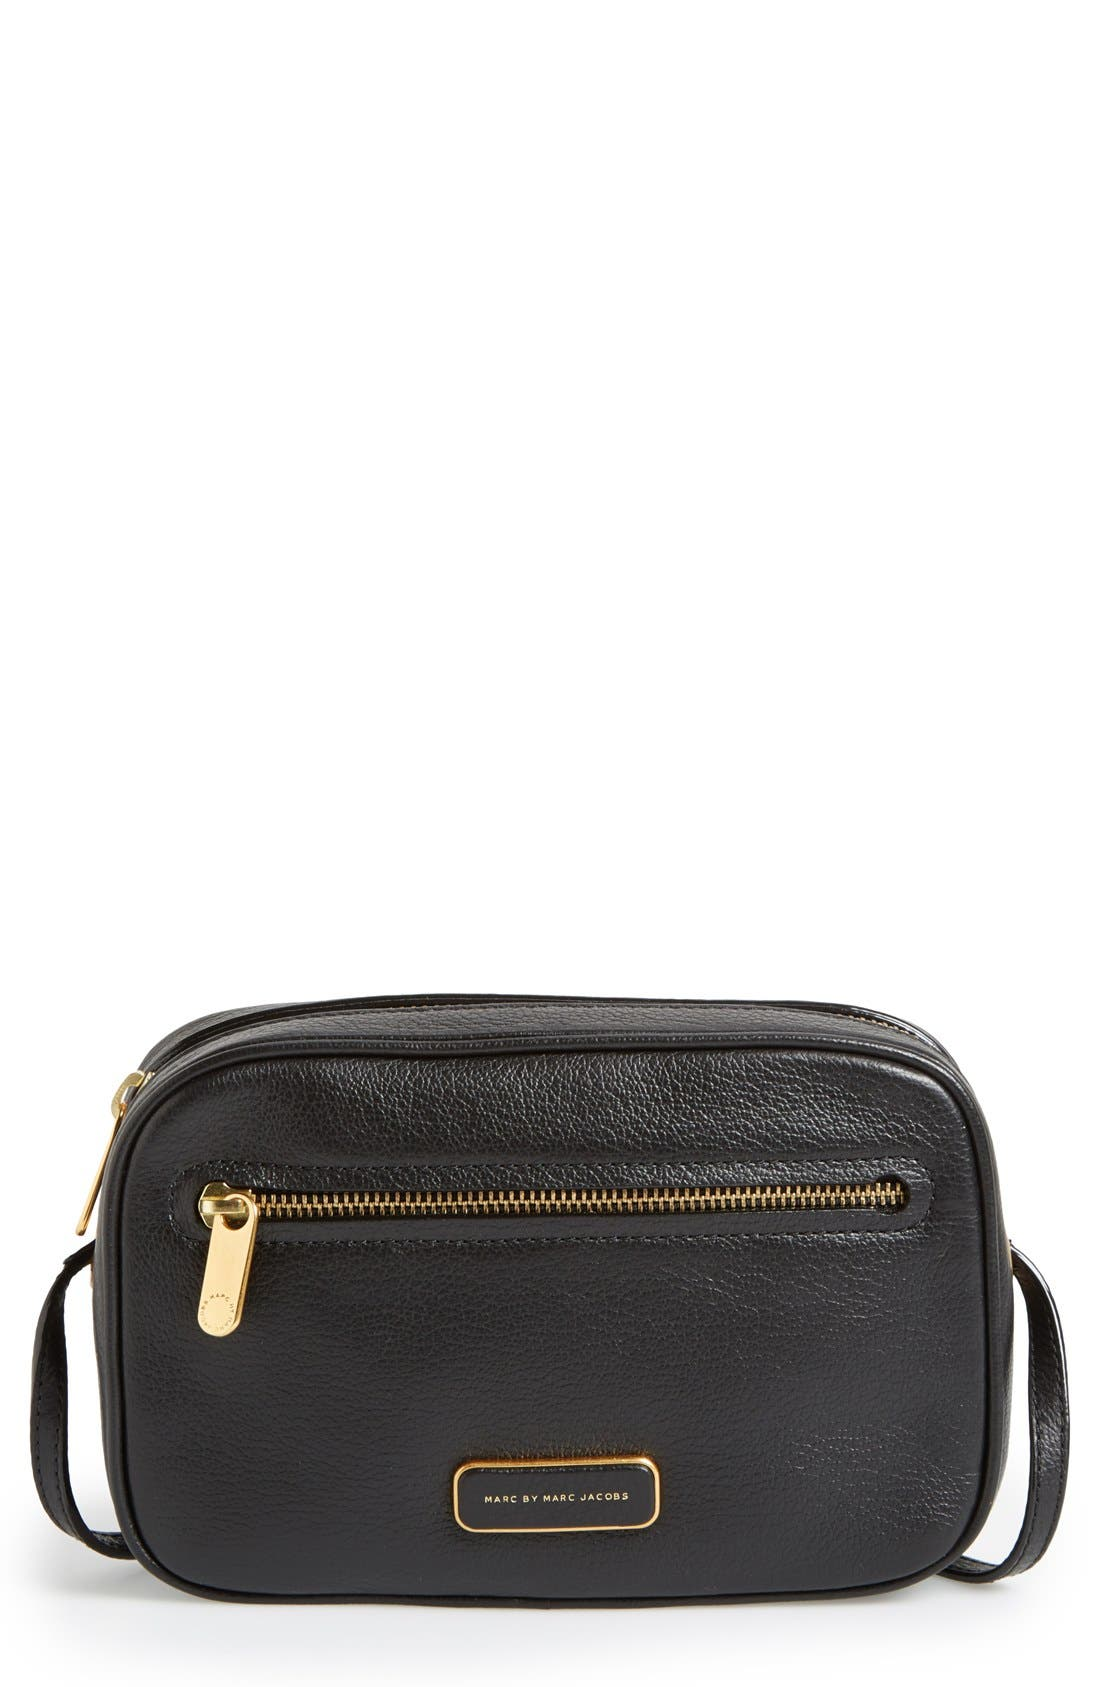 Main Image - MARC BY MARC JACOBS 'Sally' Crossbody Bag